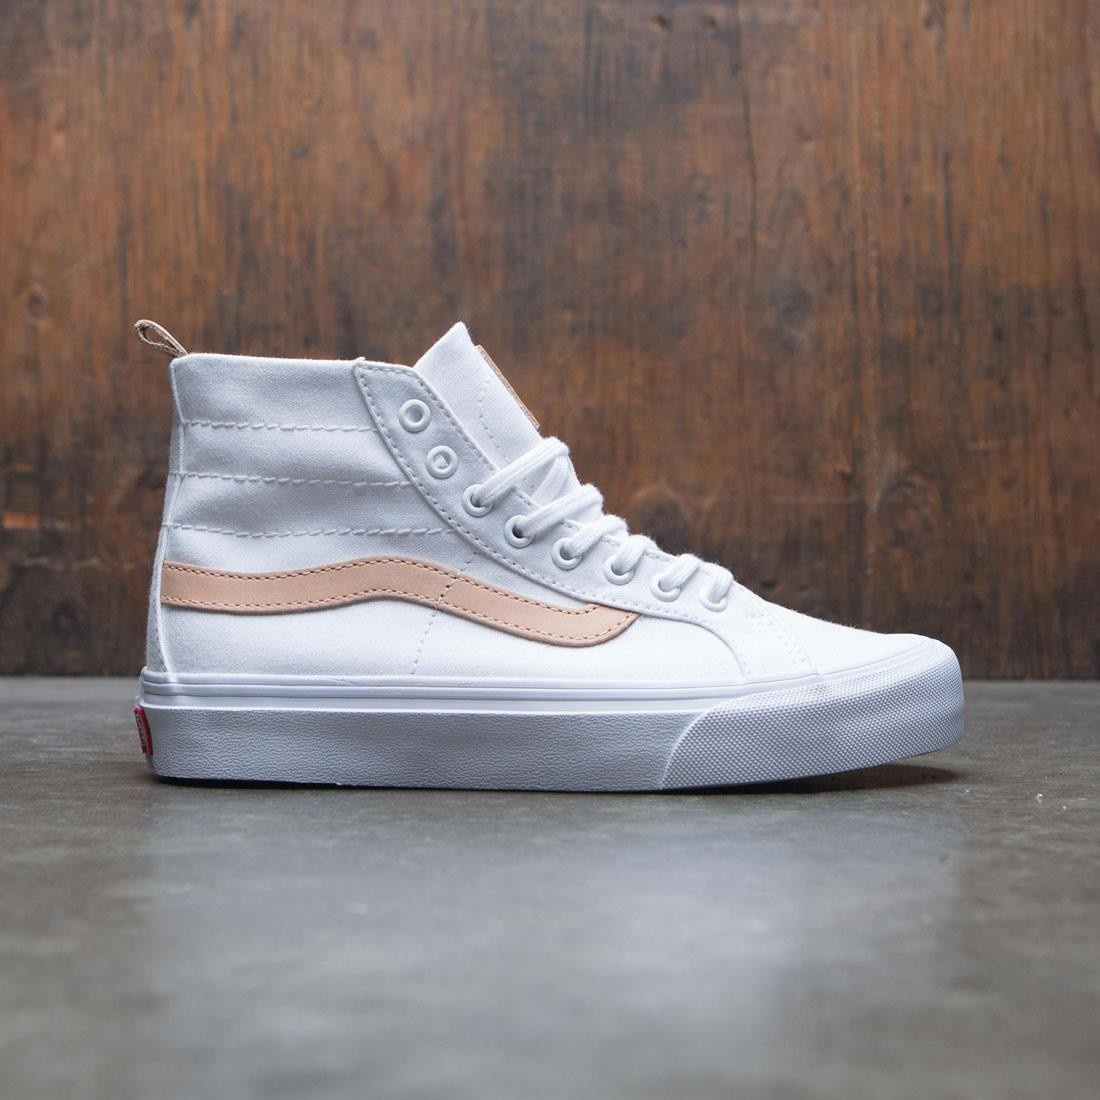 Vans Women SK8-Hi 138 Decon - Leila Hurst (white / brown)